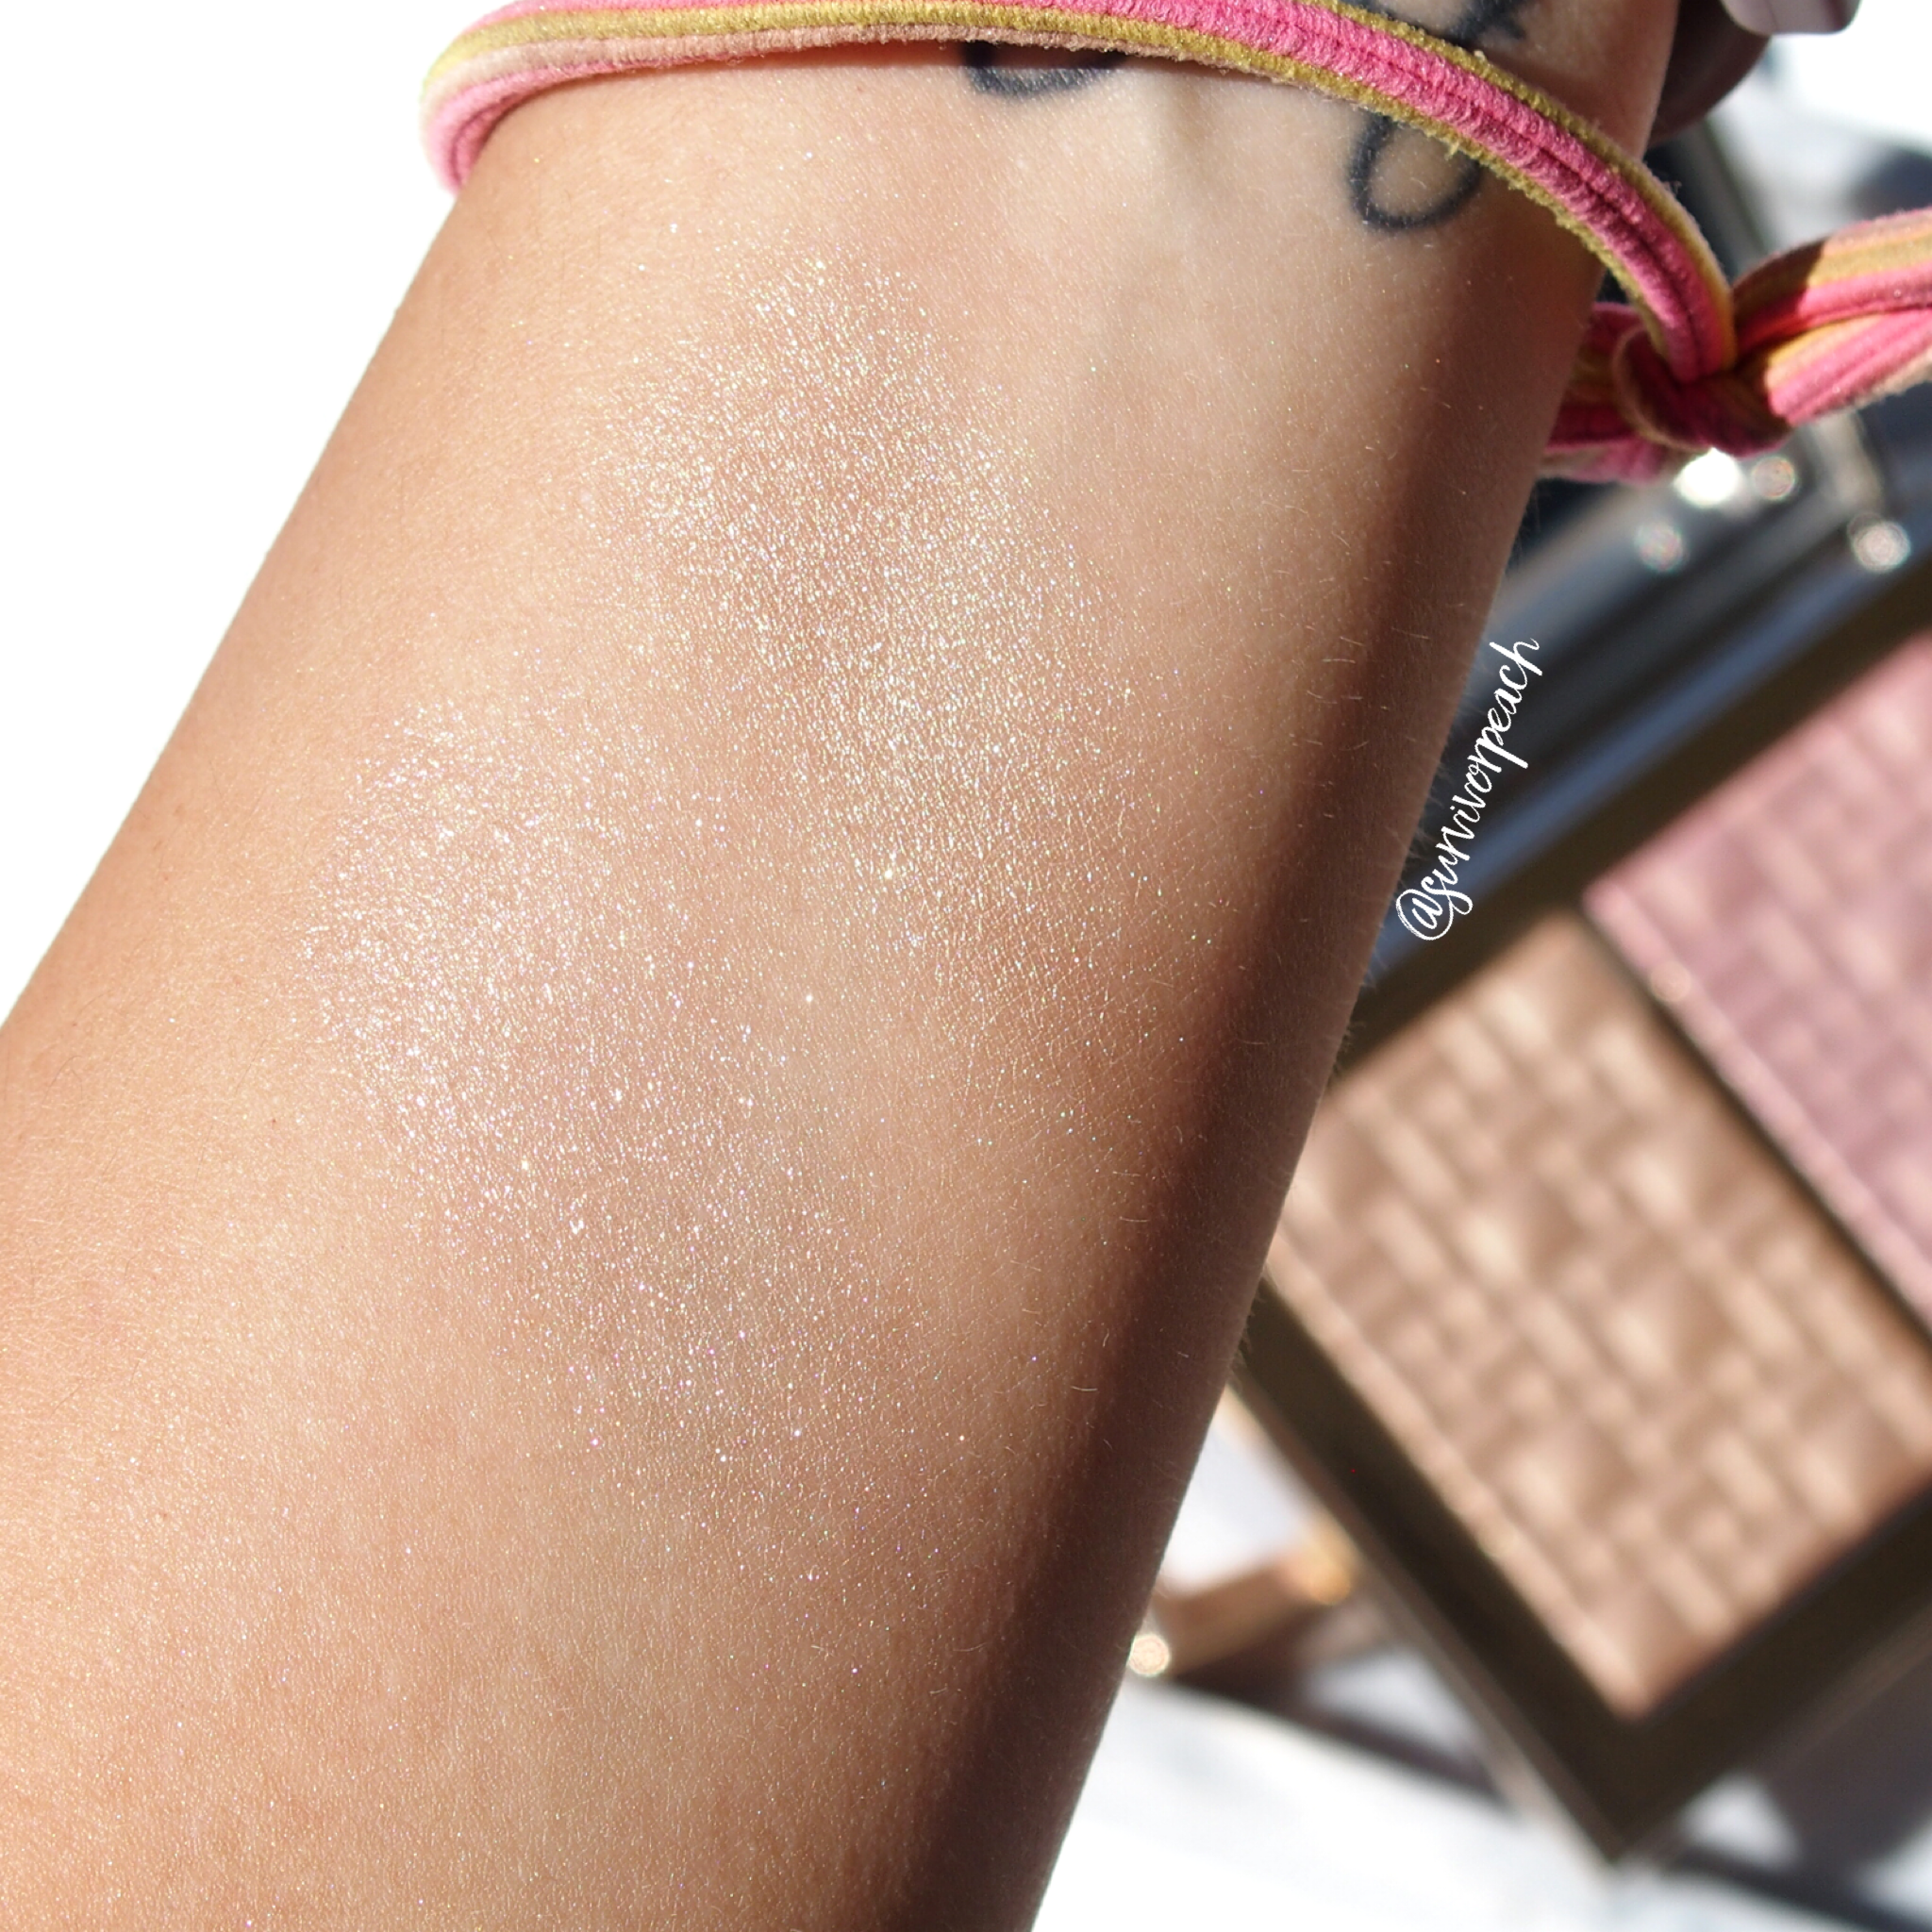 Swatches of the Bobbi Brown Highlight & Glow Highlighting Powder Duo in Opal Glow and Bare Glow